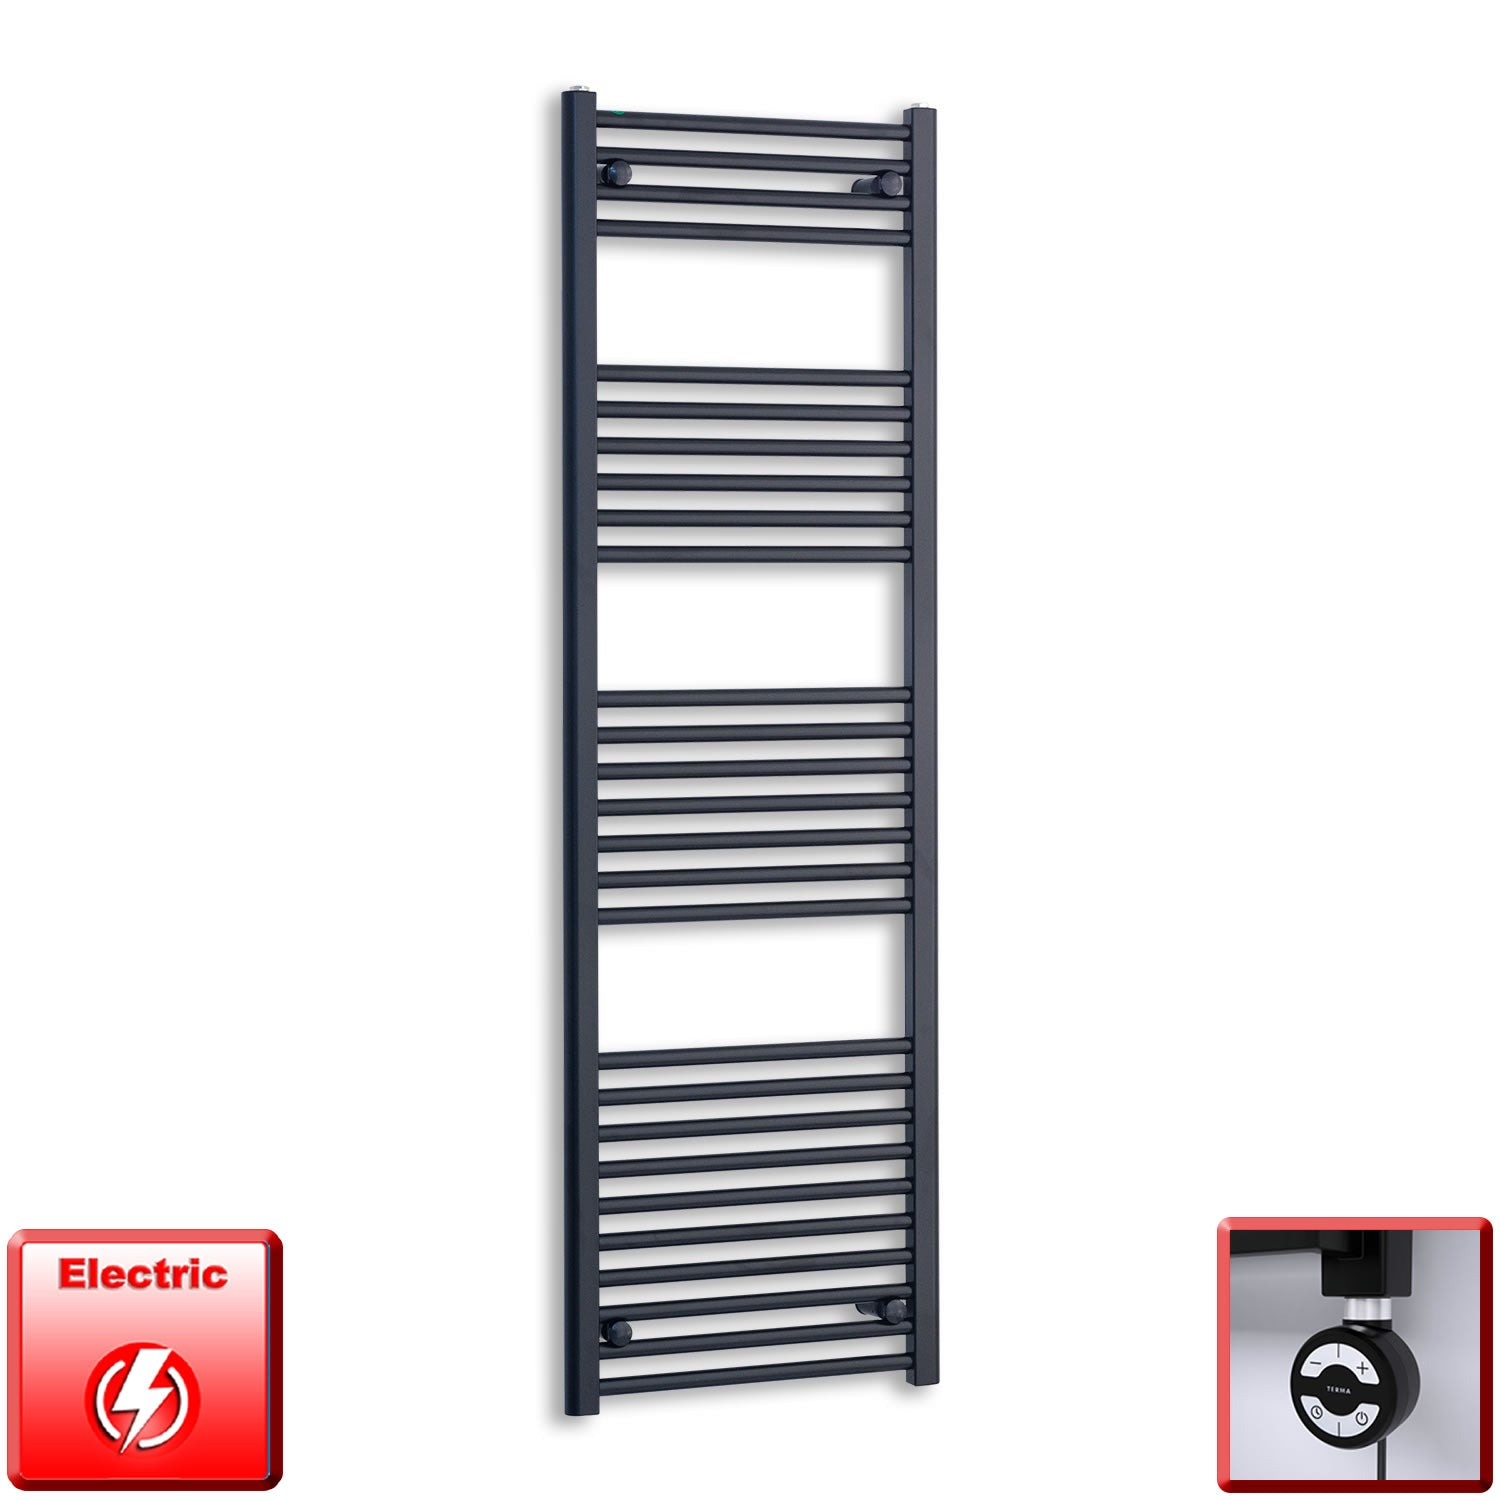 500mm Wide 1600mm High Pre-Filled Black Electric Towel Rail Radiator With Thermostatic MOA Element